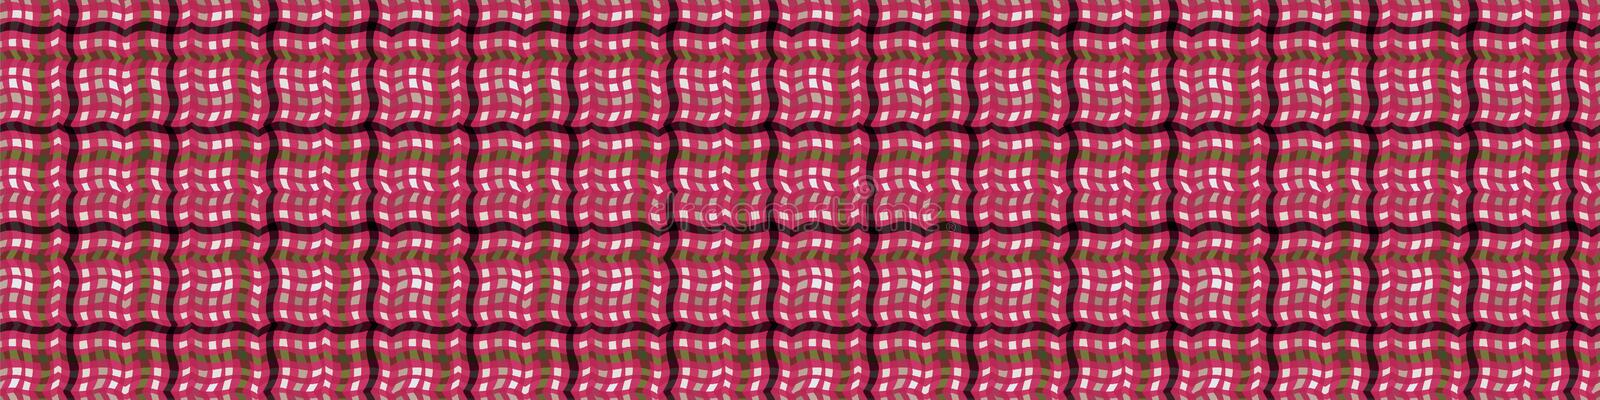 1950s Gingham Seamless Border Repeat Pattern Background. Red and White Printed Lacy Edge Banner. Classic Retro Fashion, Picnic royalty free illustration